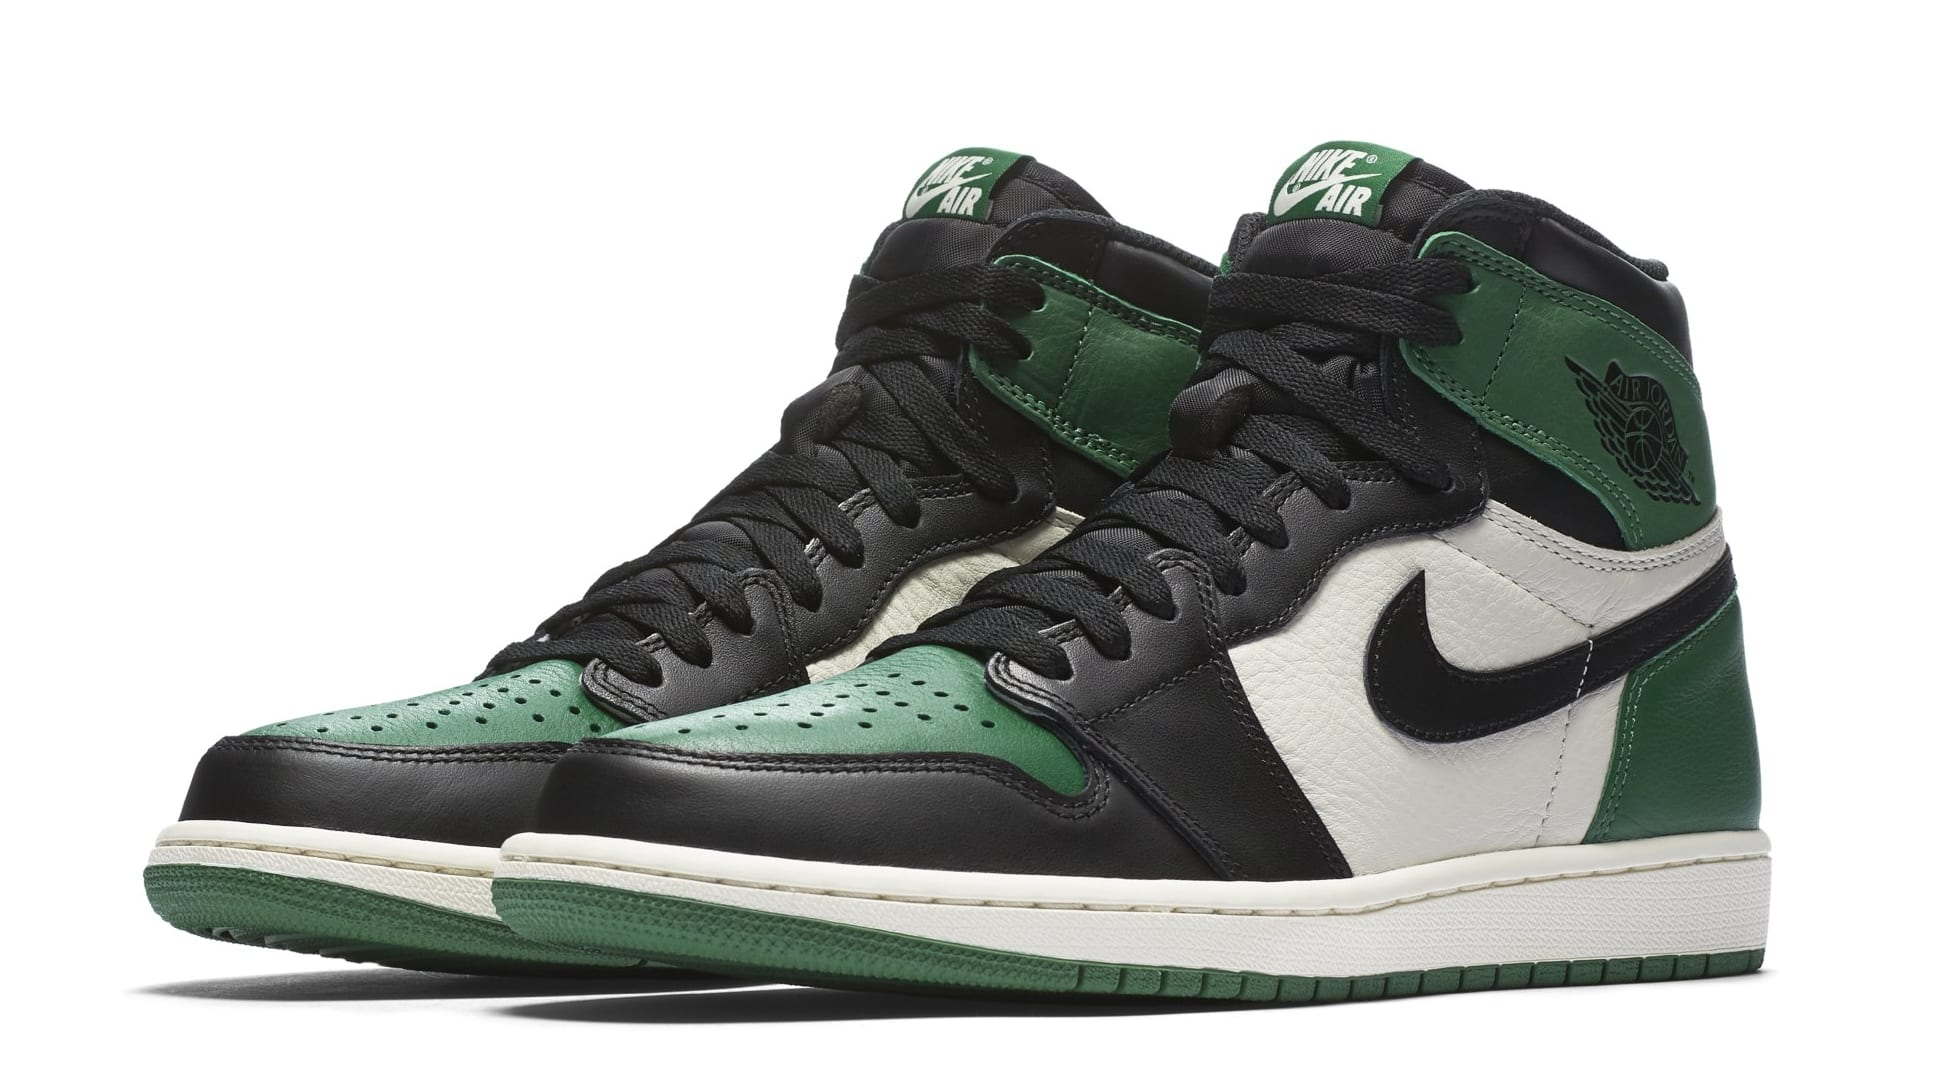 Air Jordan 1 High OG 'Pine Green' 555088-032 (Pair)